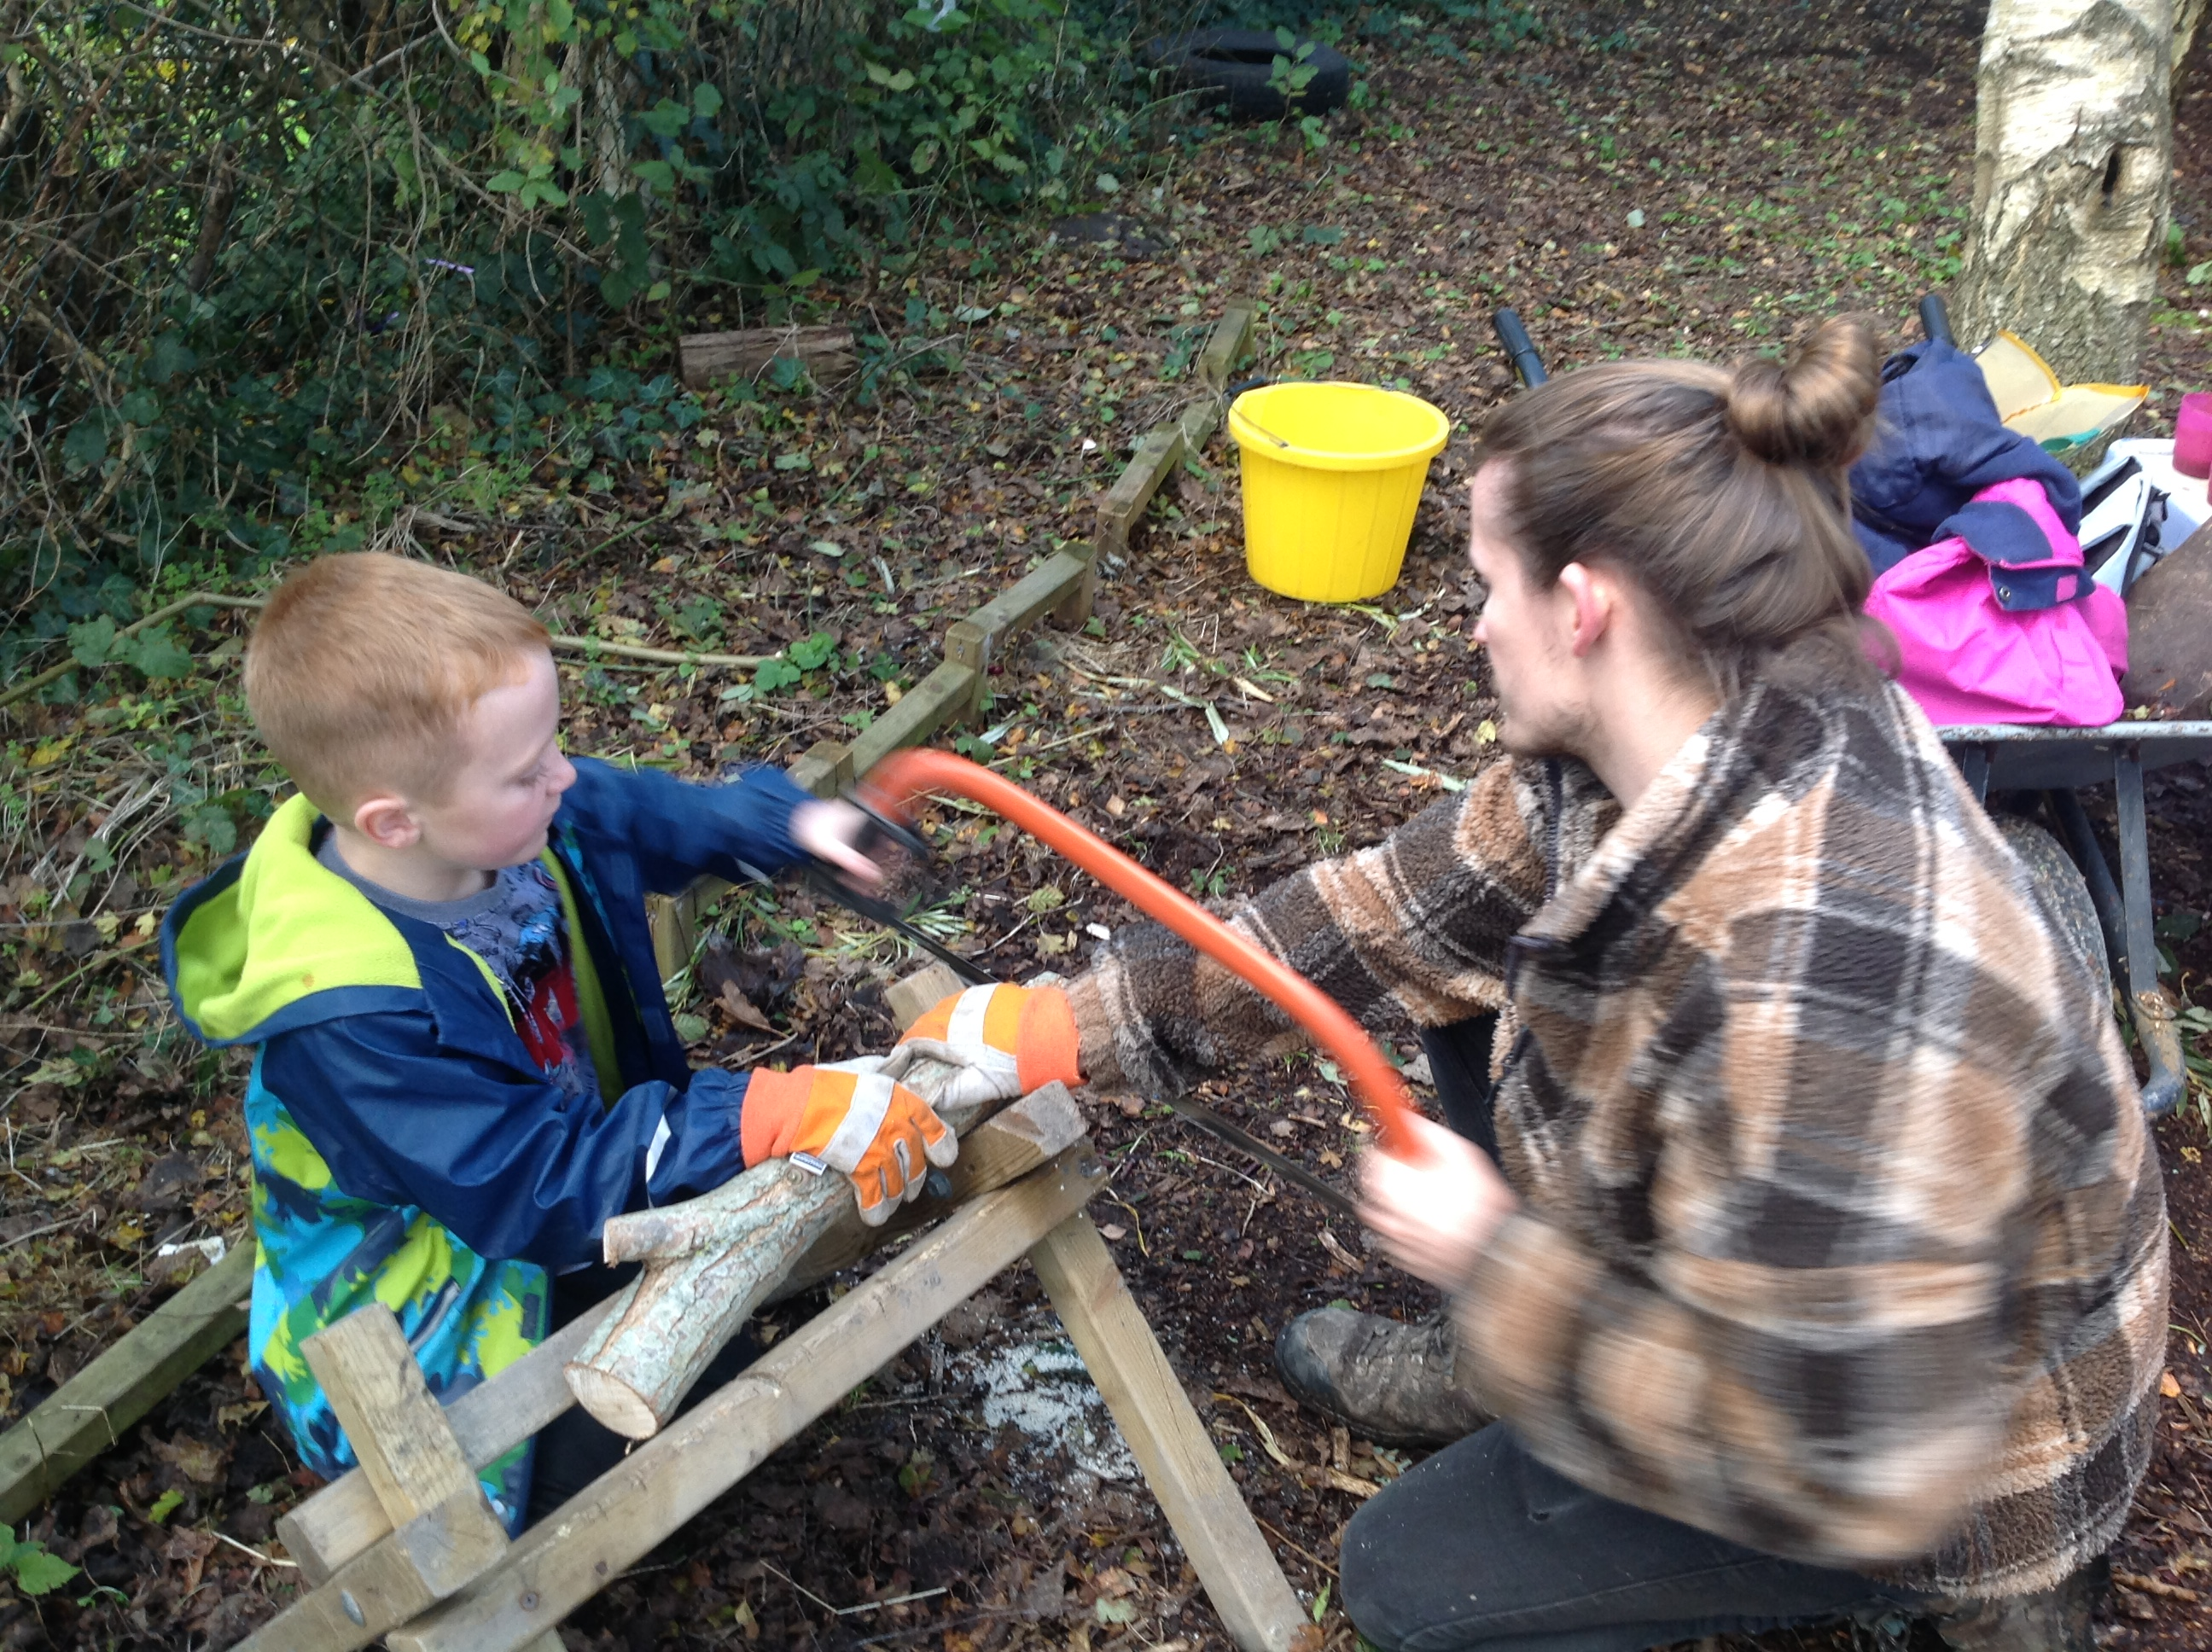 A child is learning to use tools safely.